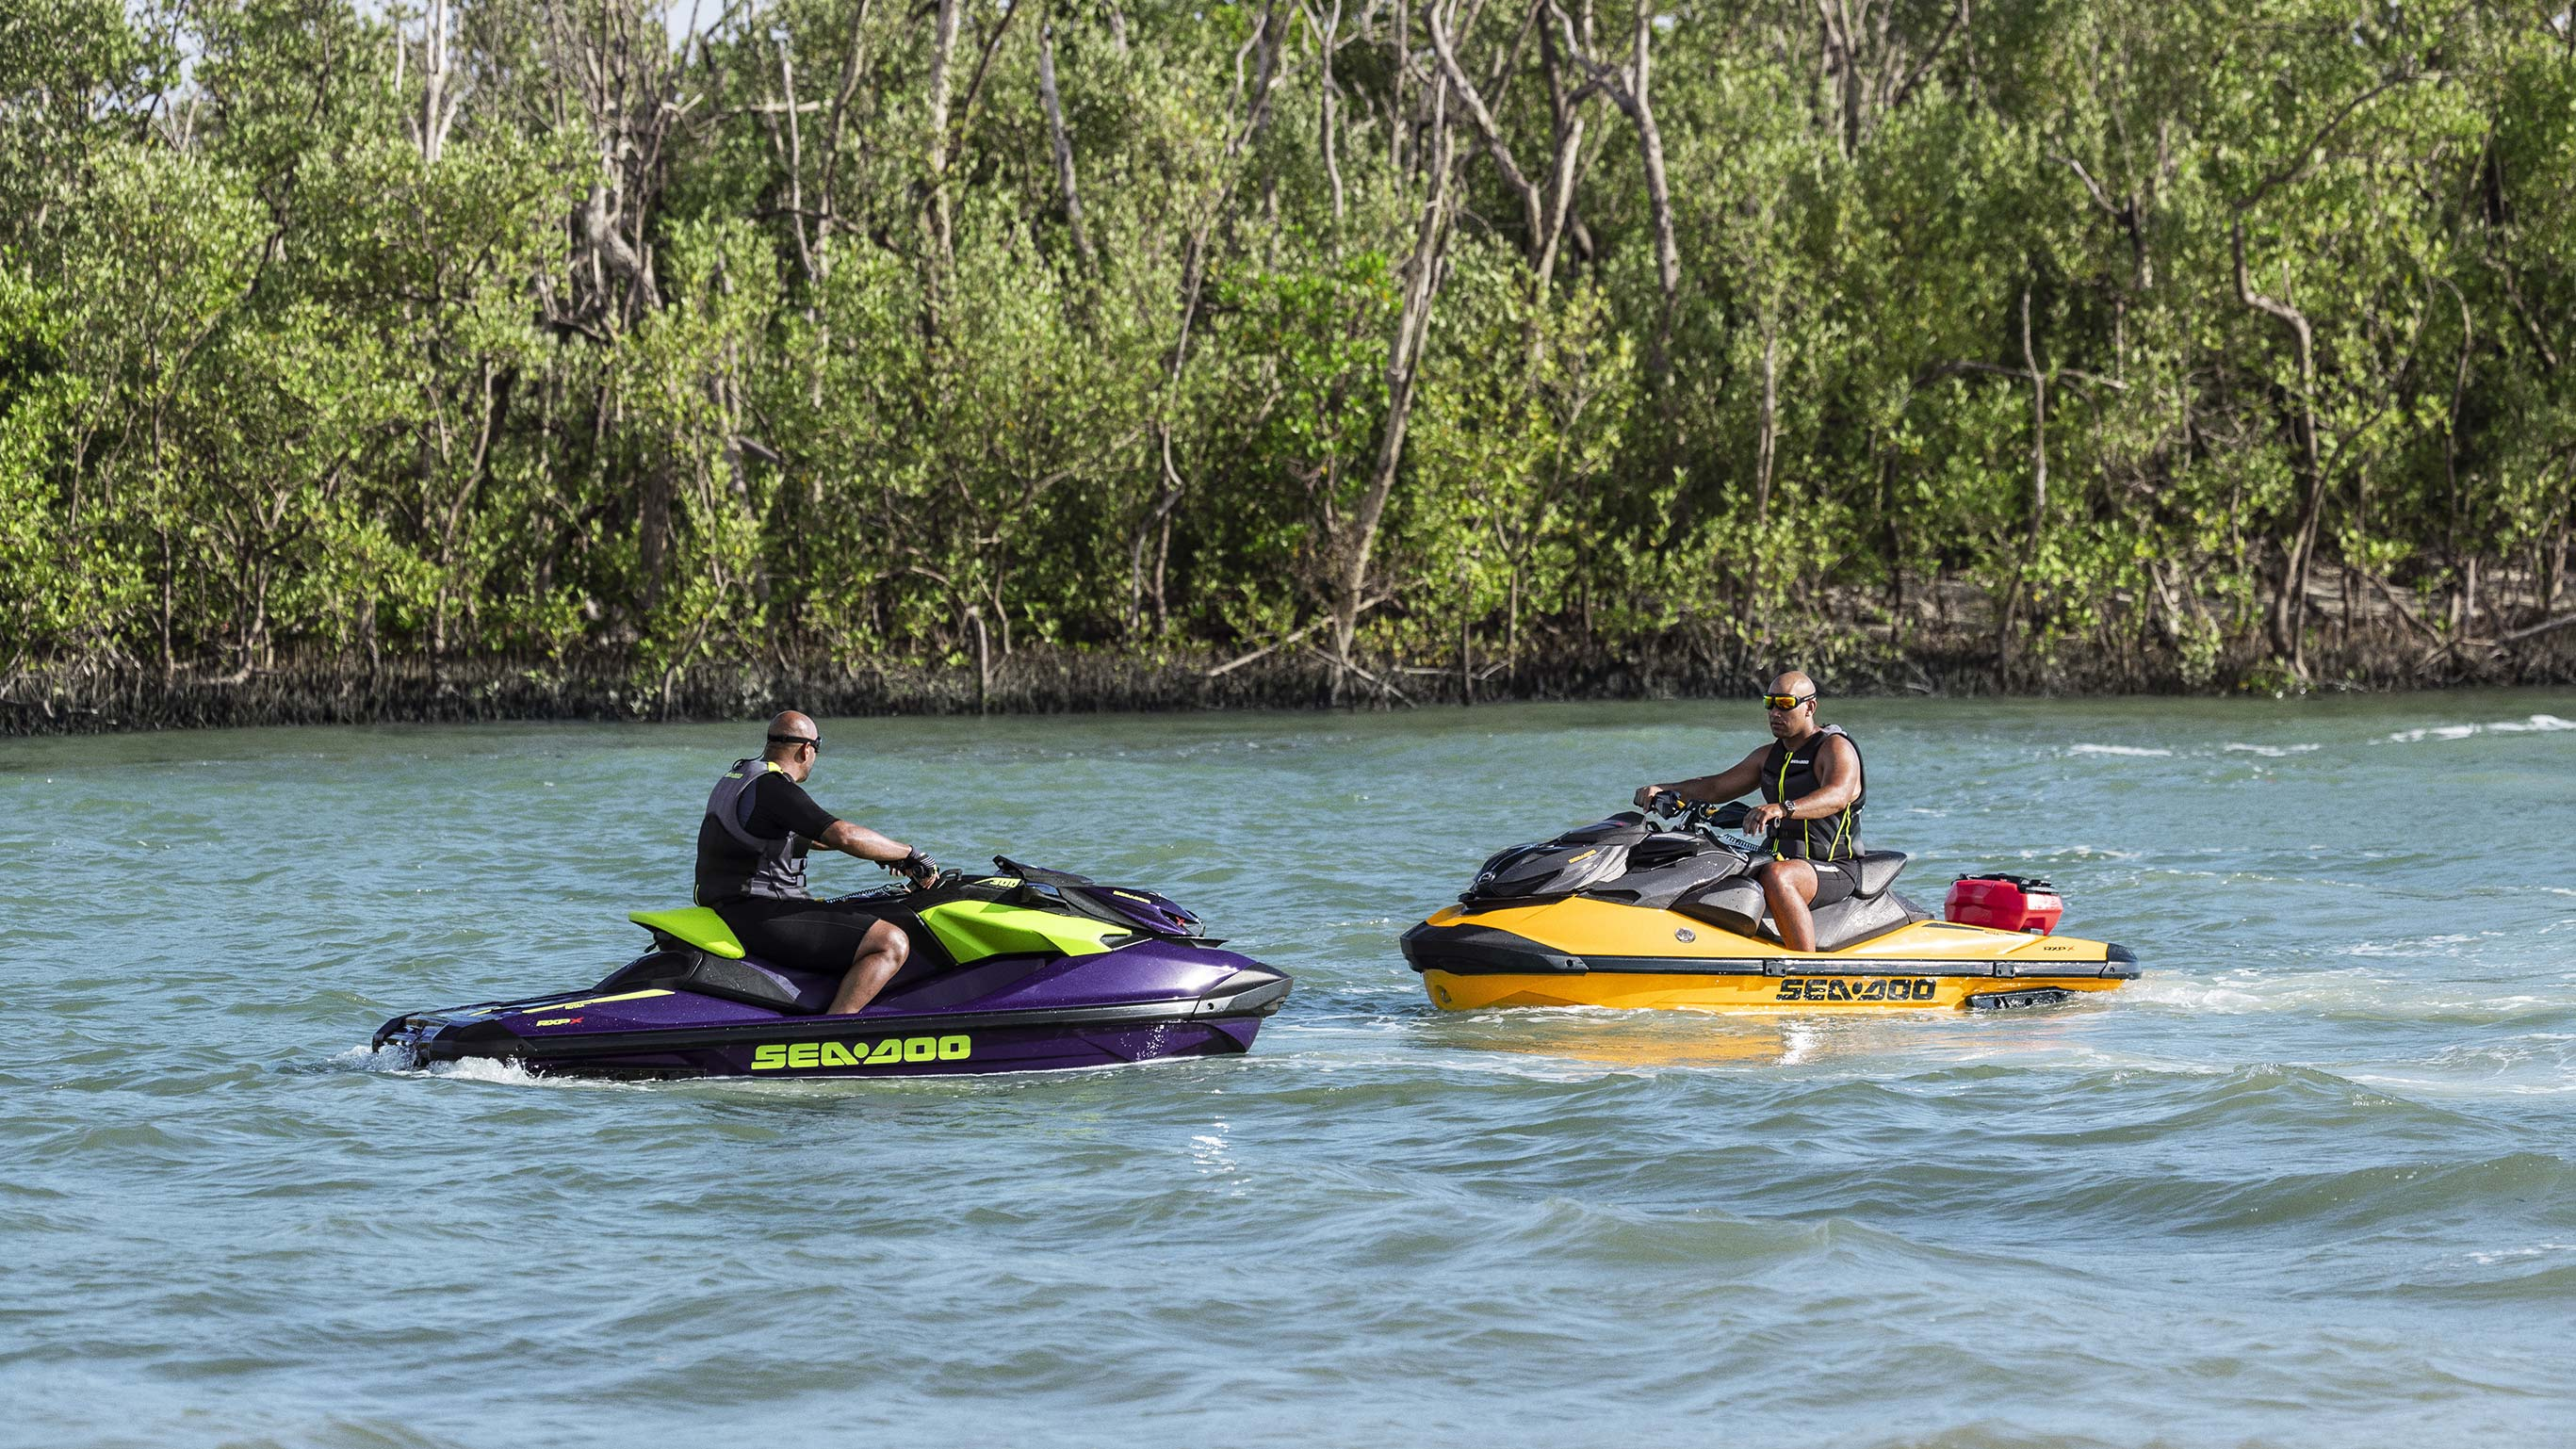 Two Sea-Doo RXP-X face to face